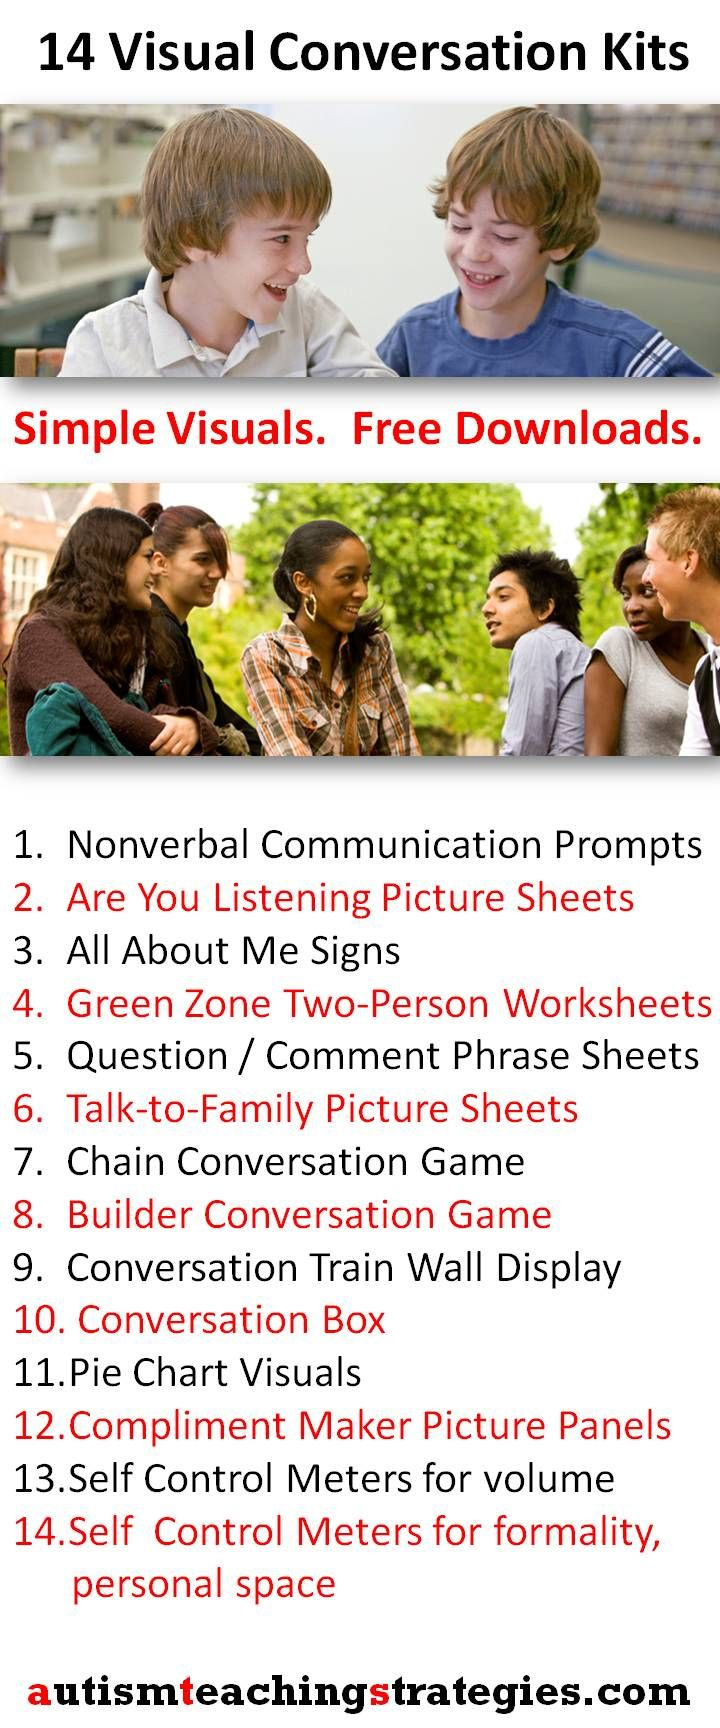 For children with high functioning autism, 14 appealing conversation activities, games and worksheets. Free download, newly indexed for easy access. Tags: autism, Asperger's, conversation pragmatics, social skills